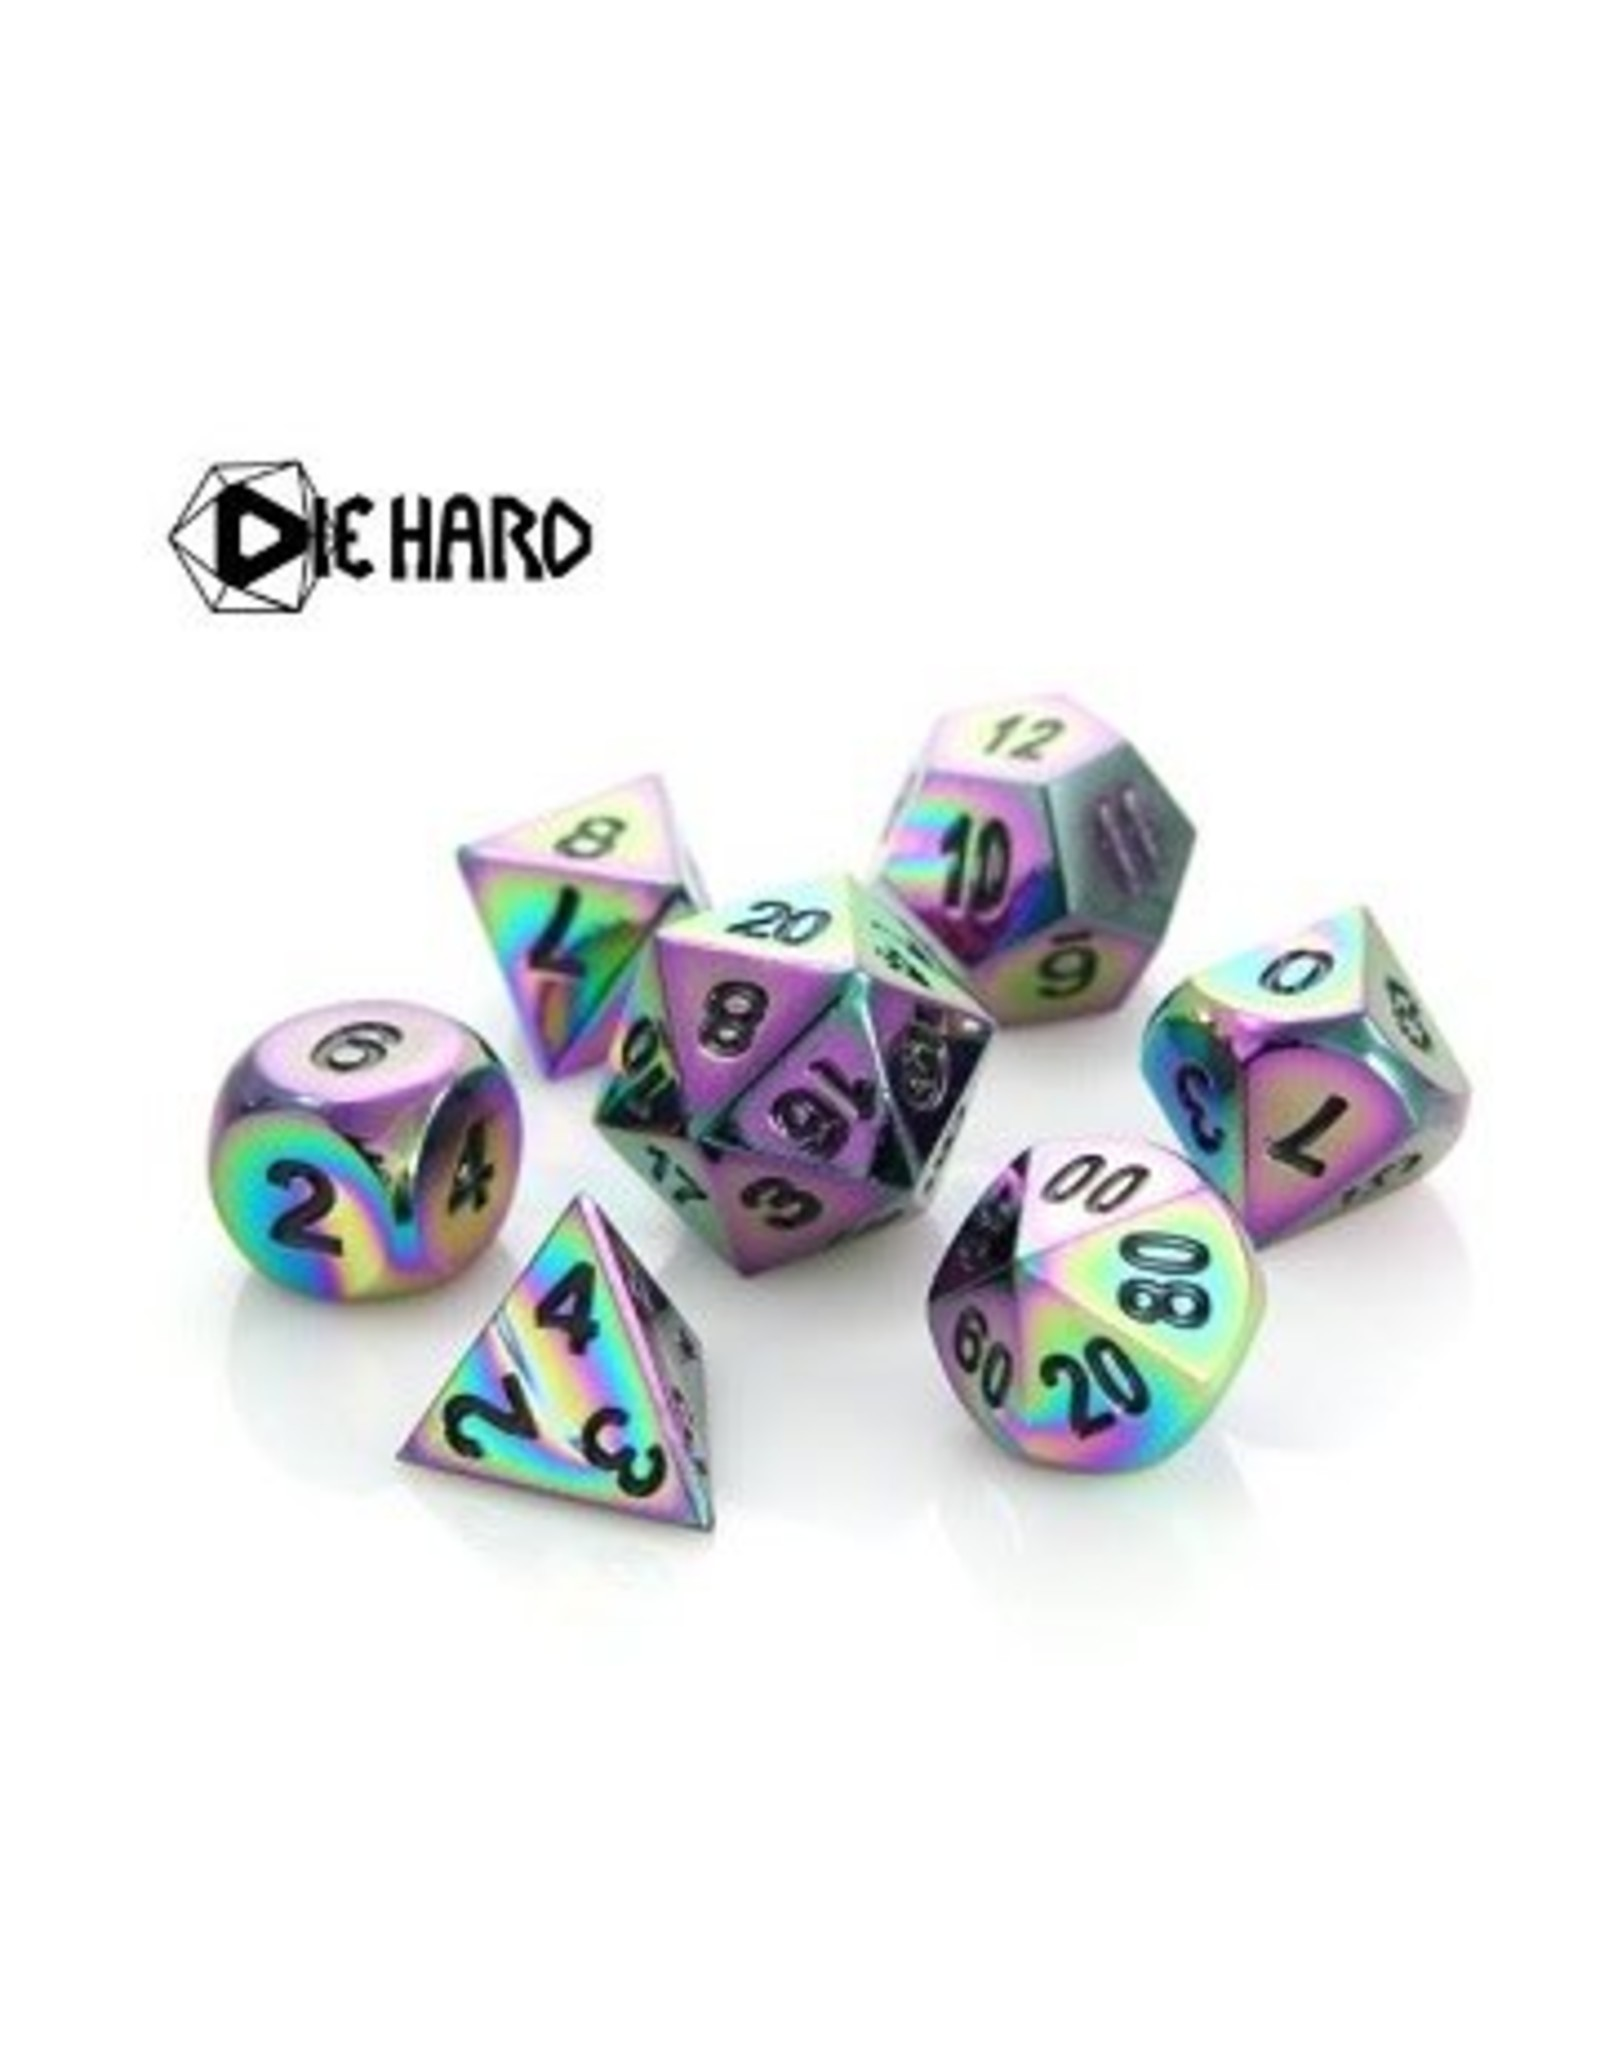 Die Hard Dice 7PC RPG METAL DICE - SCORCHED RAINBOW - BLACK